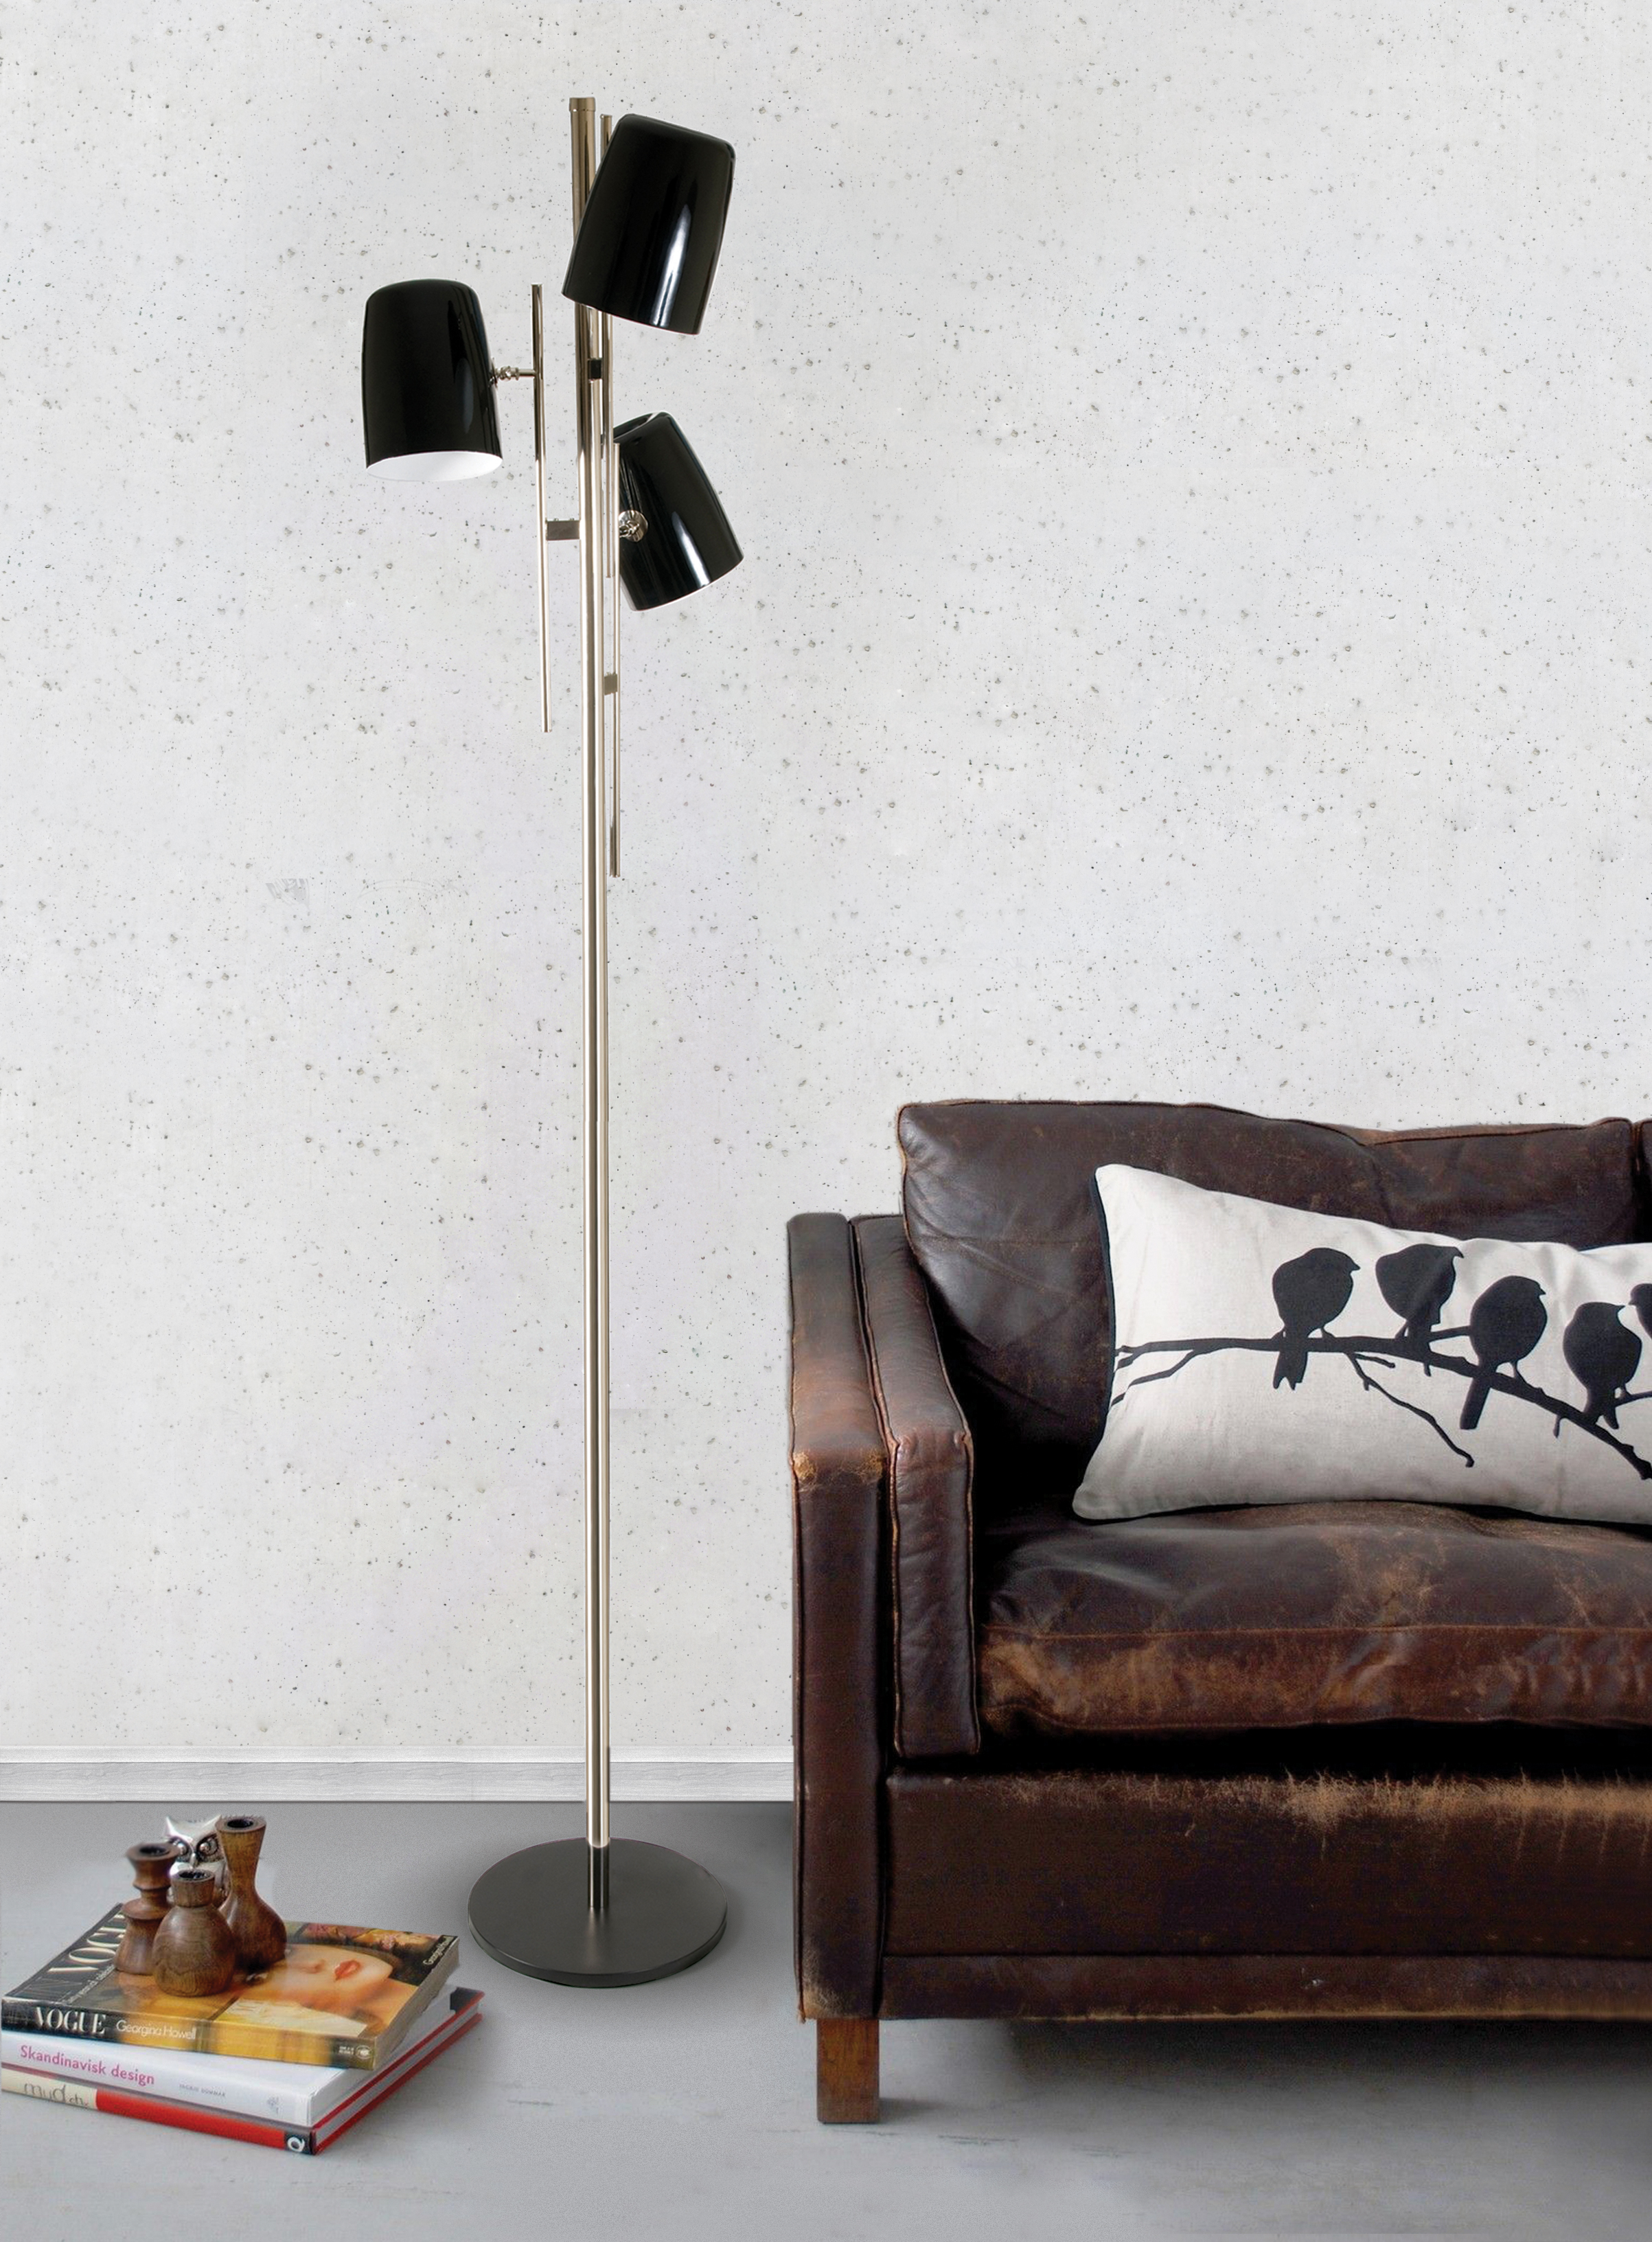 Bright Ideas A Floor Lamp for a Relaxing Atmosphere 1 modern floor lamp Bright Ideas: A Modern Floor Lamp for a Relaxing Atmosphere Bright Ideas A Modern Floor Lamp for a Relaxing Atmosphere 3